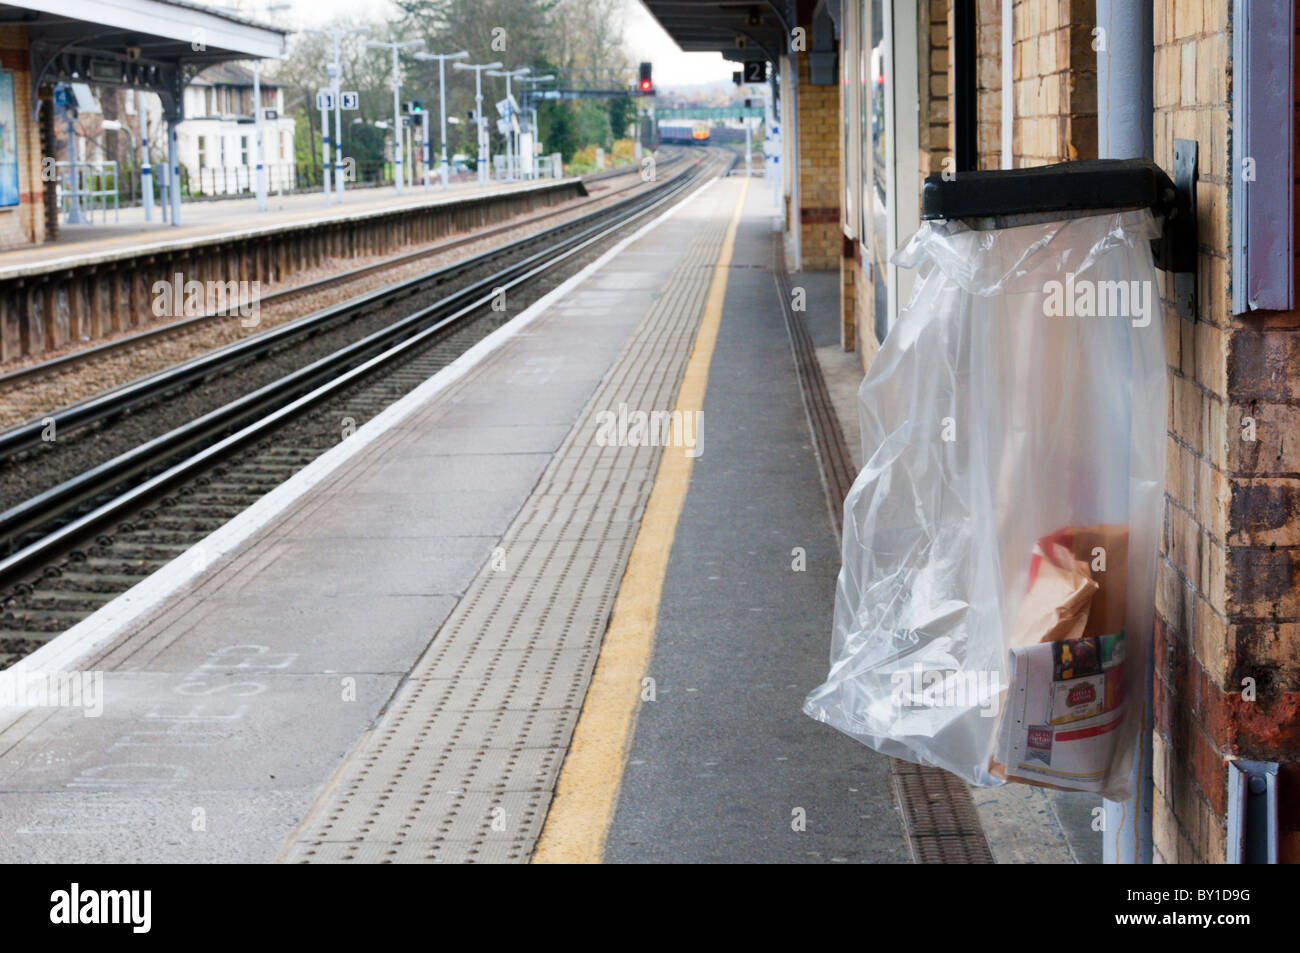 A see-through transparent bin-bag used as a security measure on a south London station. - Stock Image